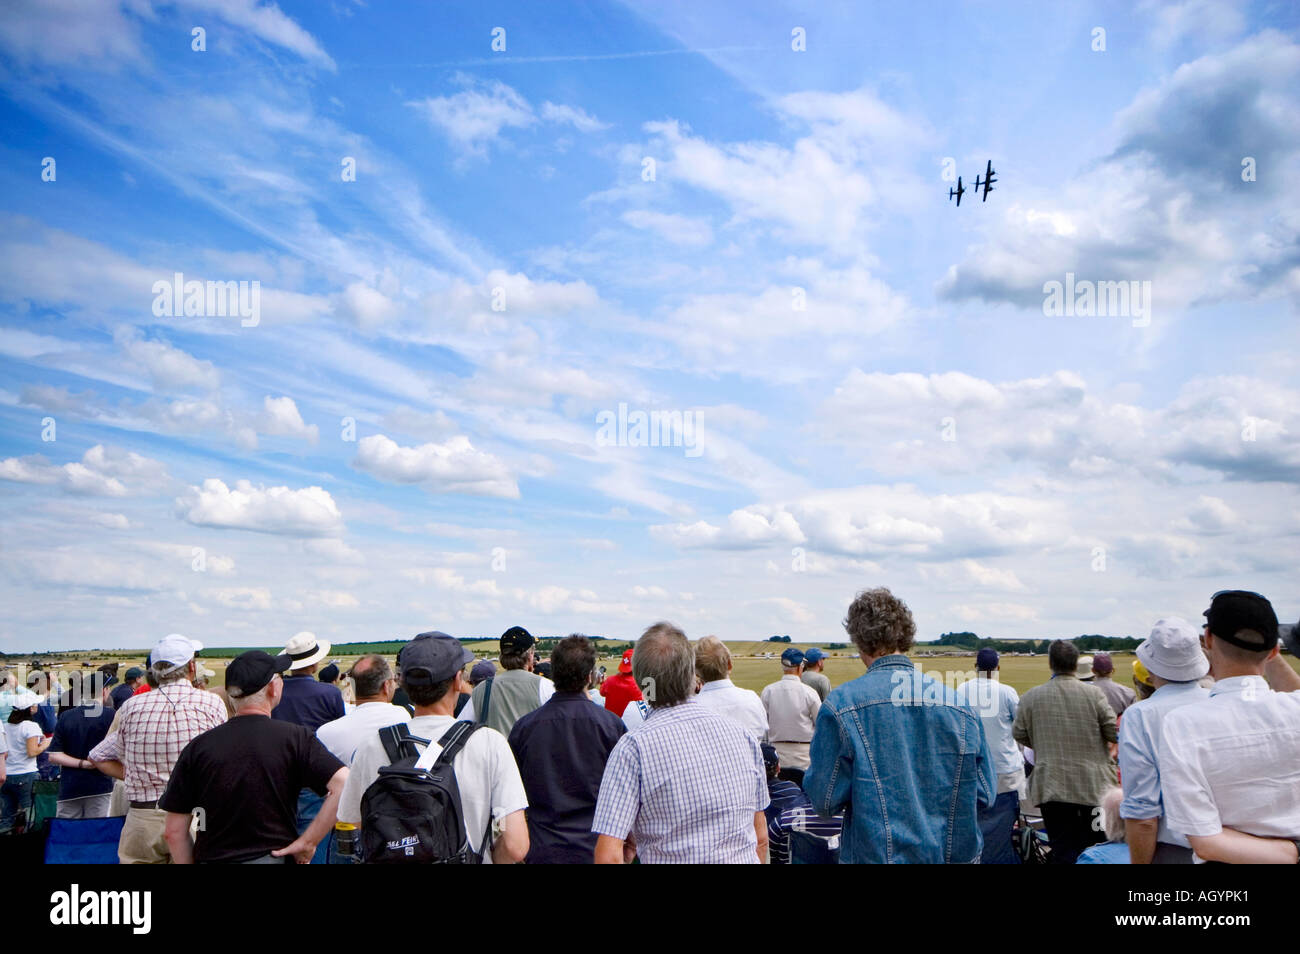 Spectators watching a display at the Flying legends airshow 2006 imperial war museum duxford cambridgeshire england Stock Photo